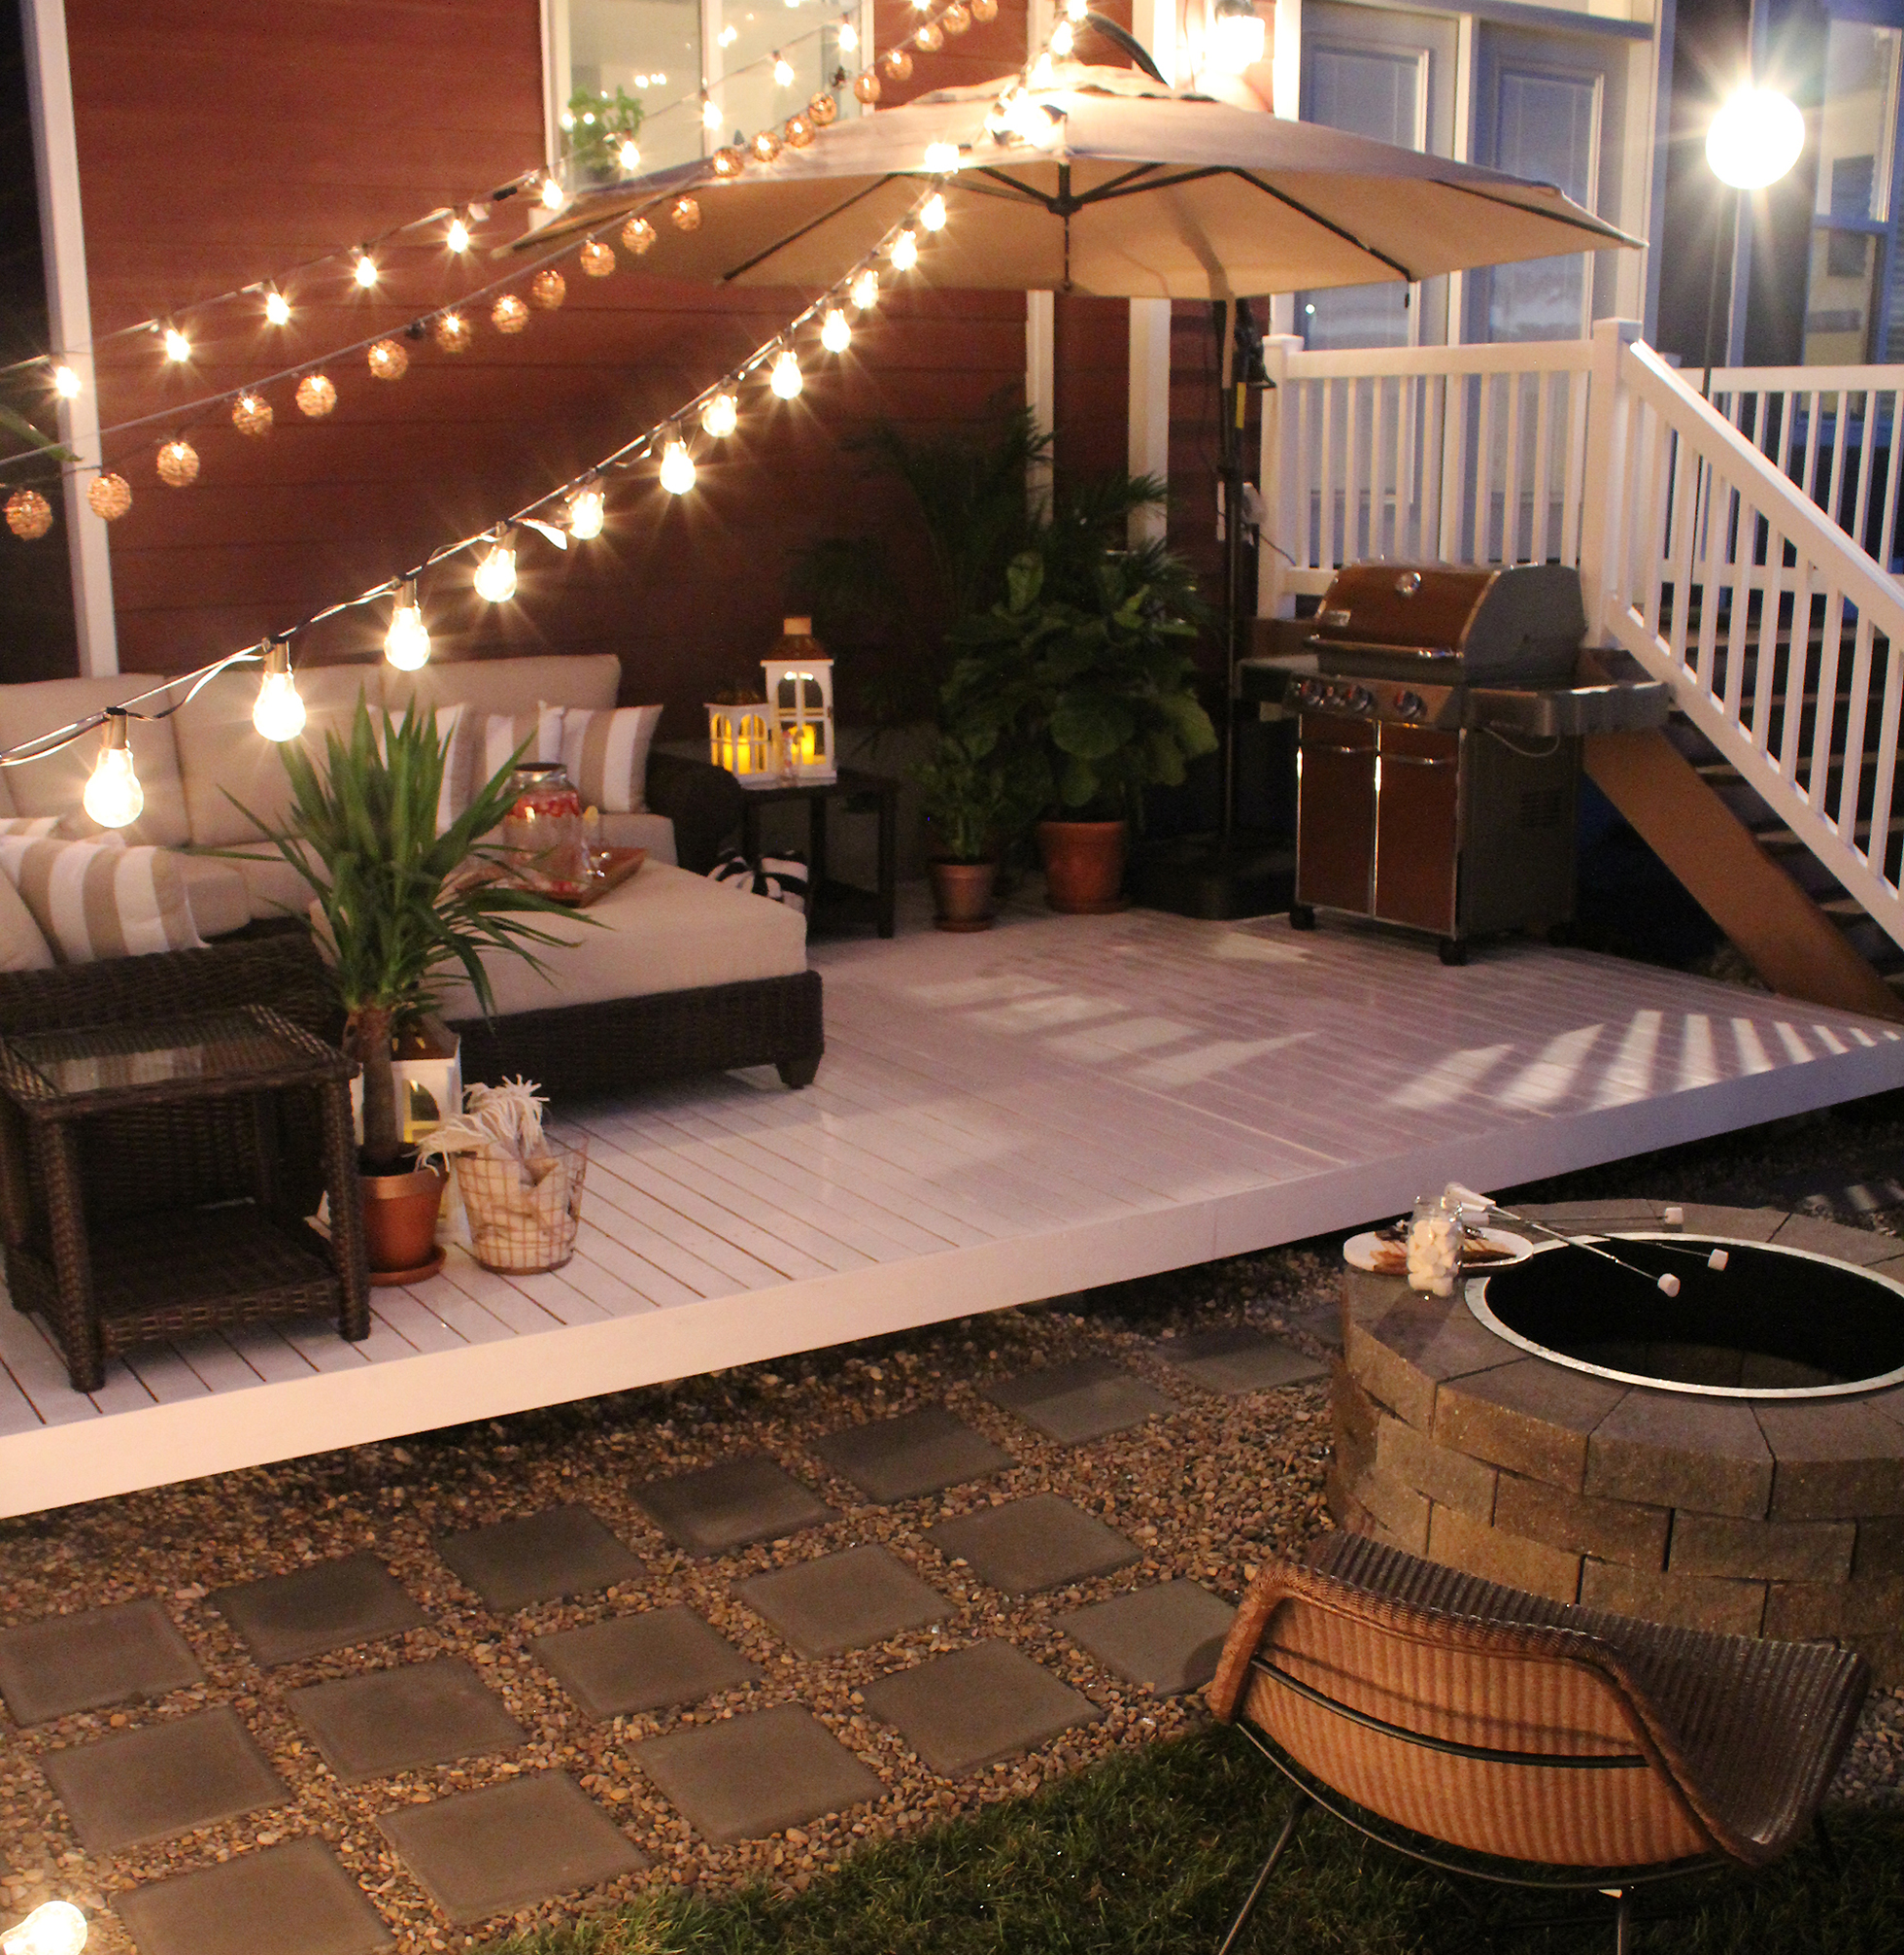 8 Simple And Easy Landscaping Ideas | HouseLogic on Basic Patio Ideas id=24788